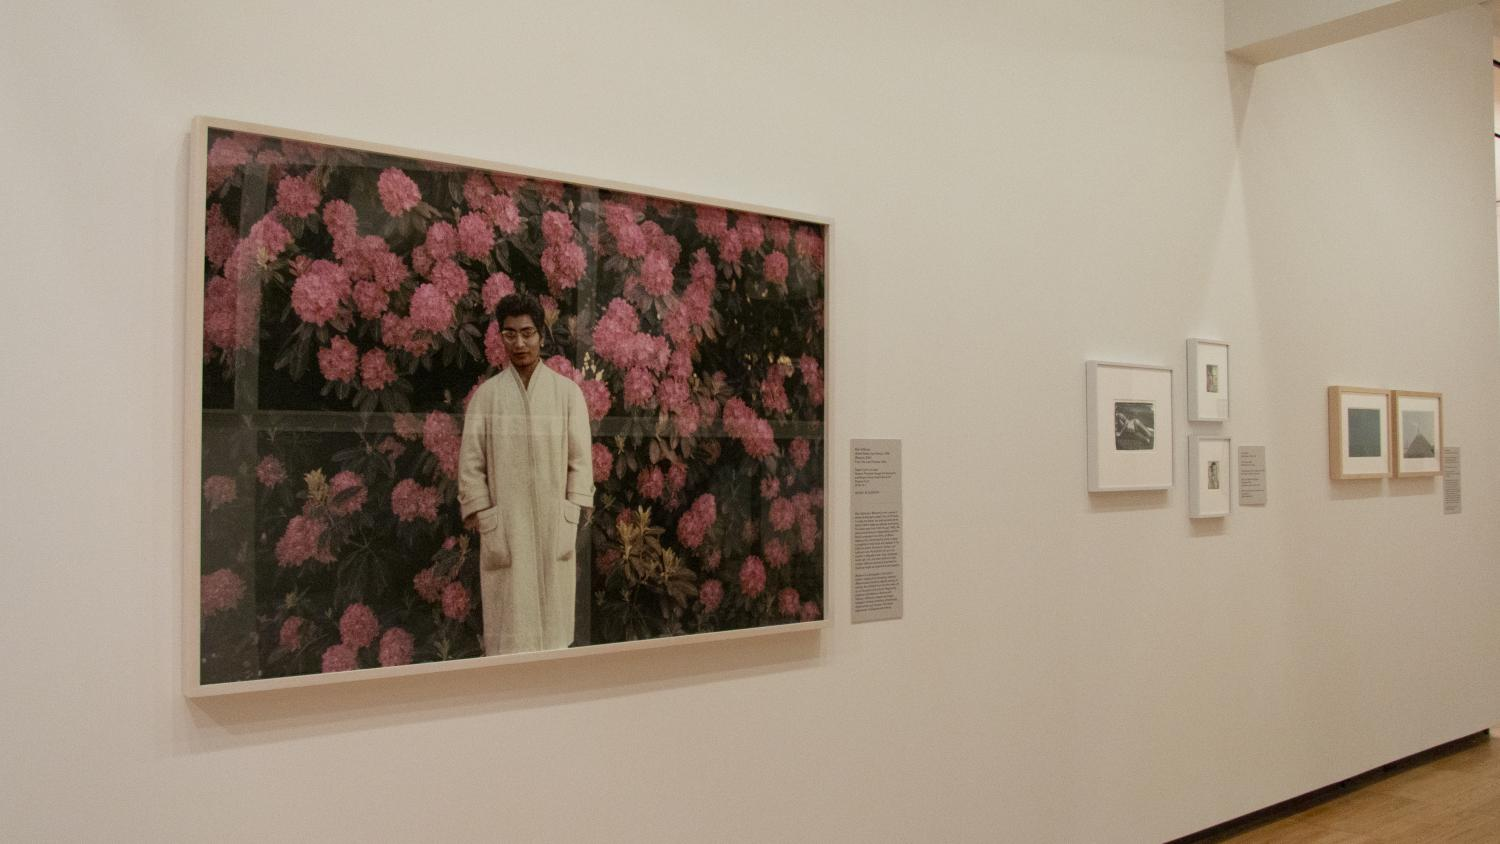 Large, fuzzy photograph of a South Asian woman in a long white coat. She stands in front of a giant blooming rhodedendron bush. The reason the image is blurry is that the artist has scratched away the image. He hopes to show how memory can fade over time.